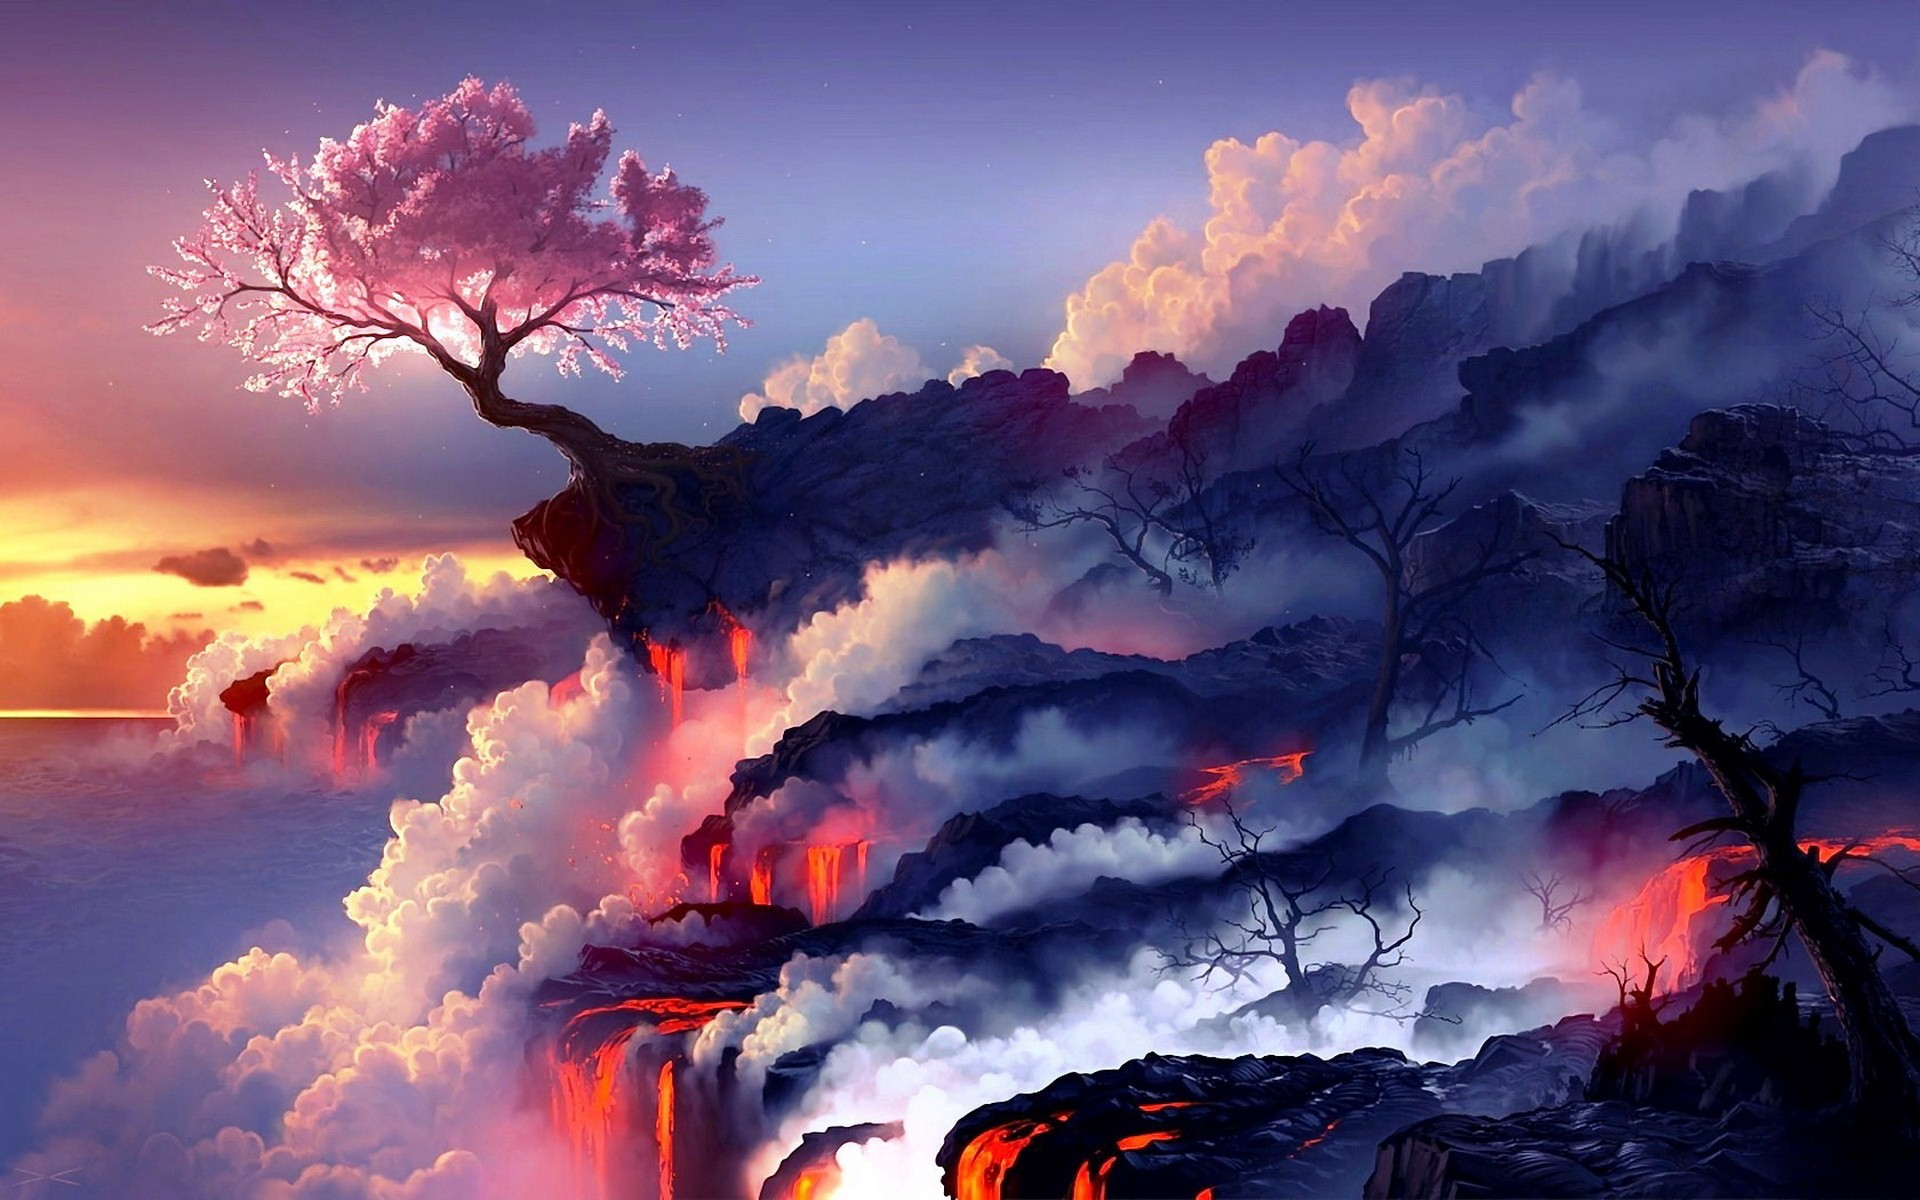 Cherry blossoms and lava ...